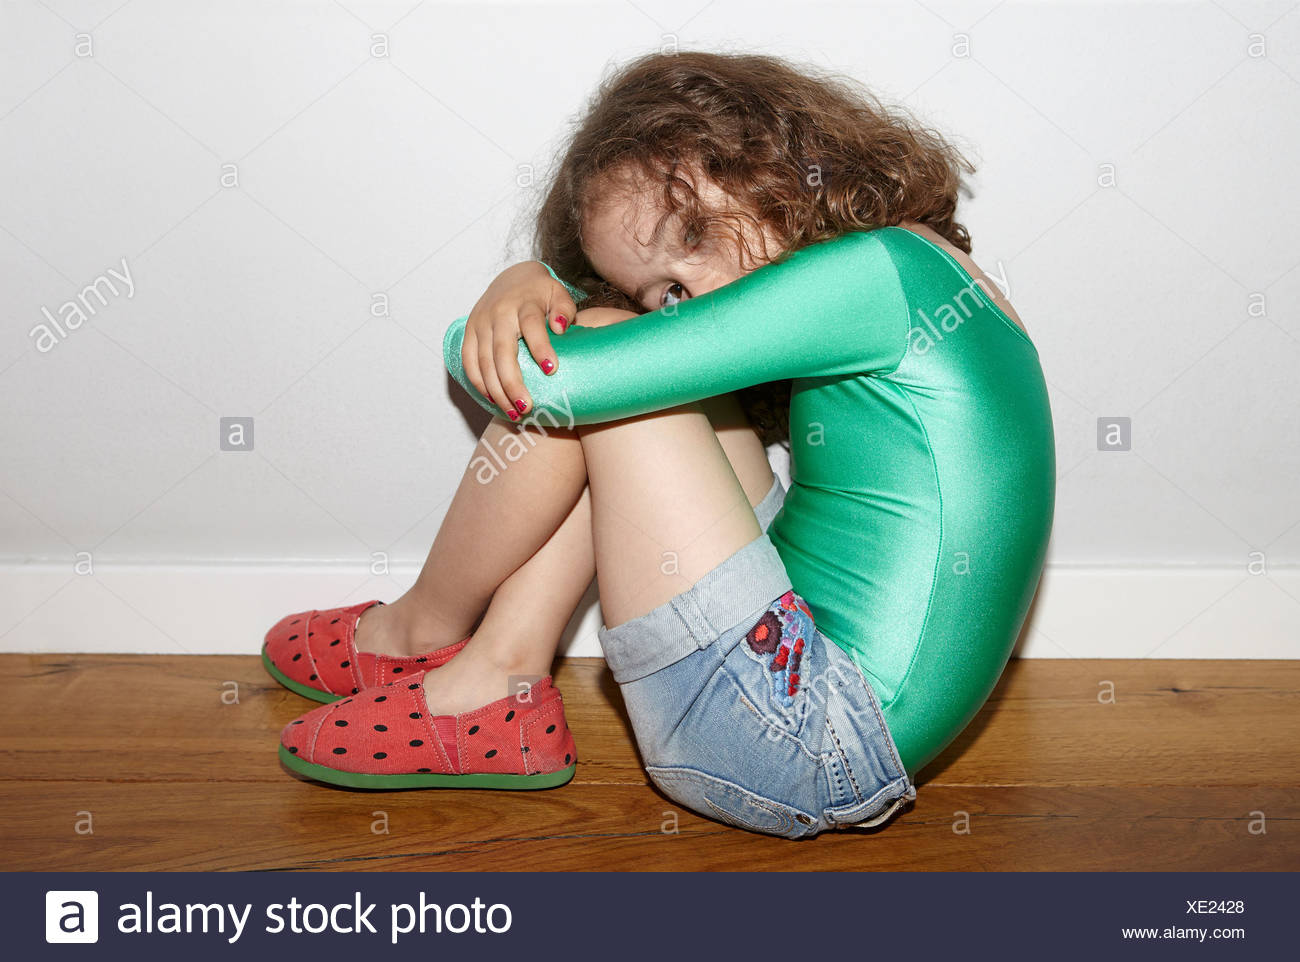 Child on floor in fetal position - Stock Image